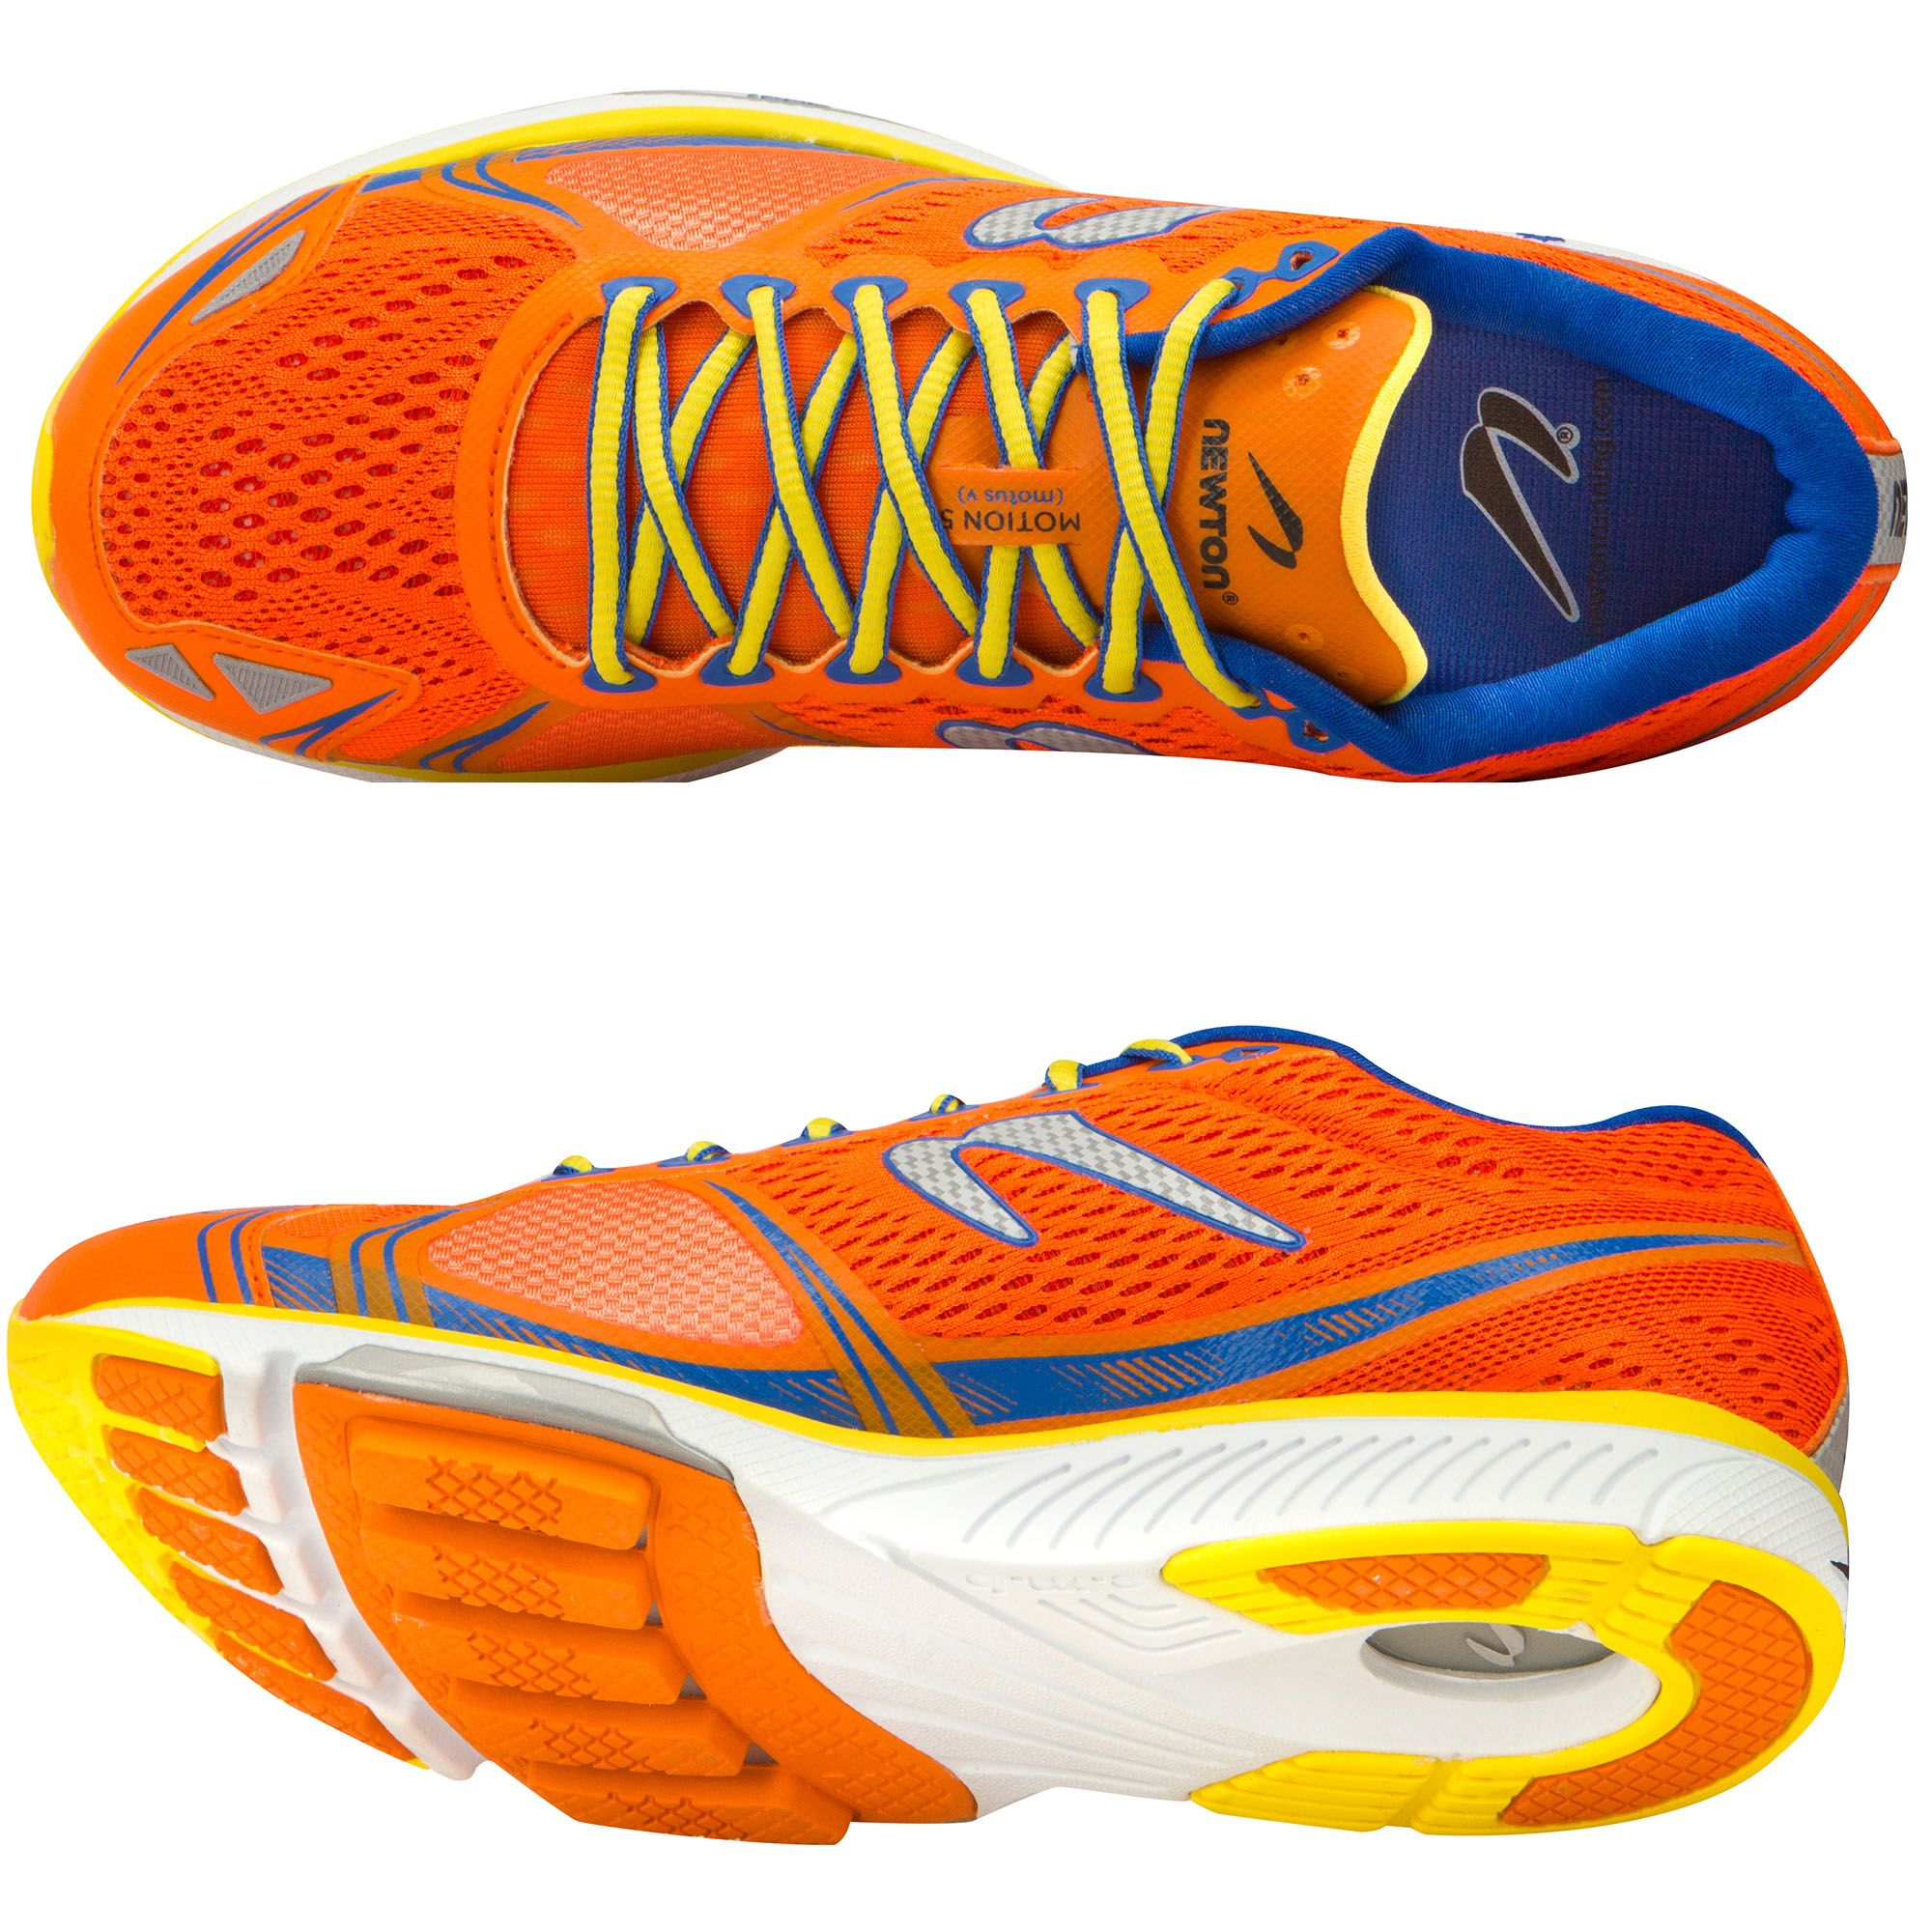 How To Stretch Tennis Shoes Longer